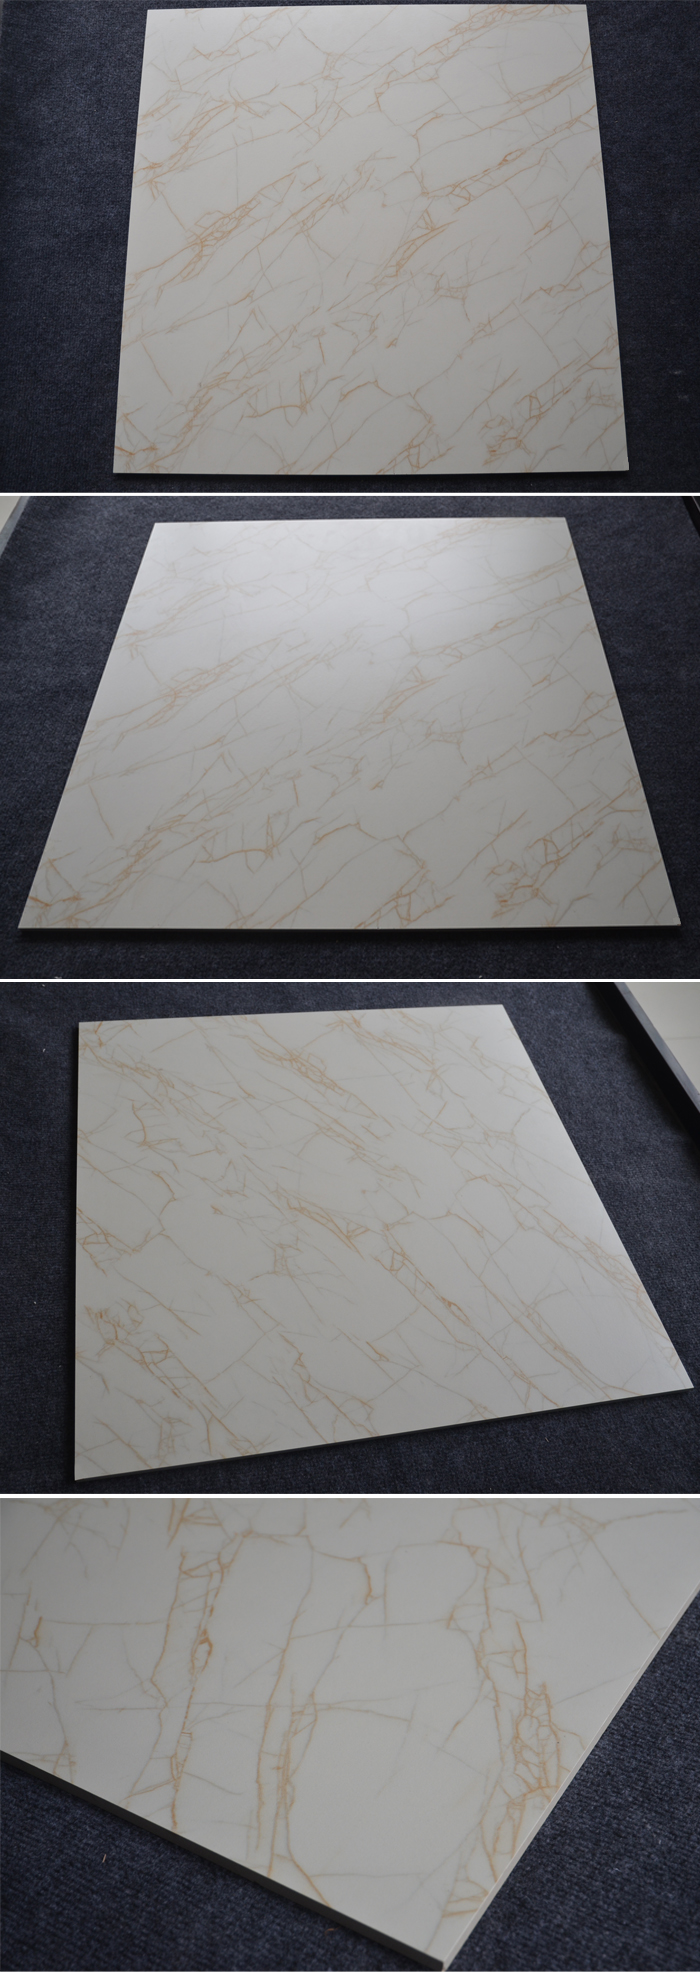 Hmp617m alibaba china royal ceramic floor tile buy ceramic floor hmp617m alibaba china royal ceramic floor tile dailygadgetfo Gallery